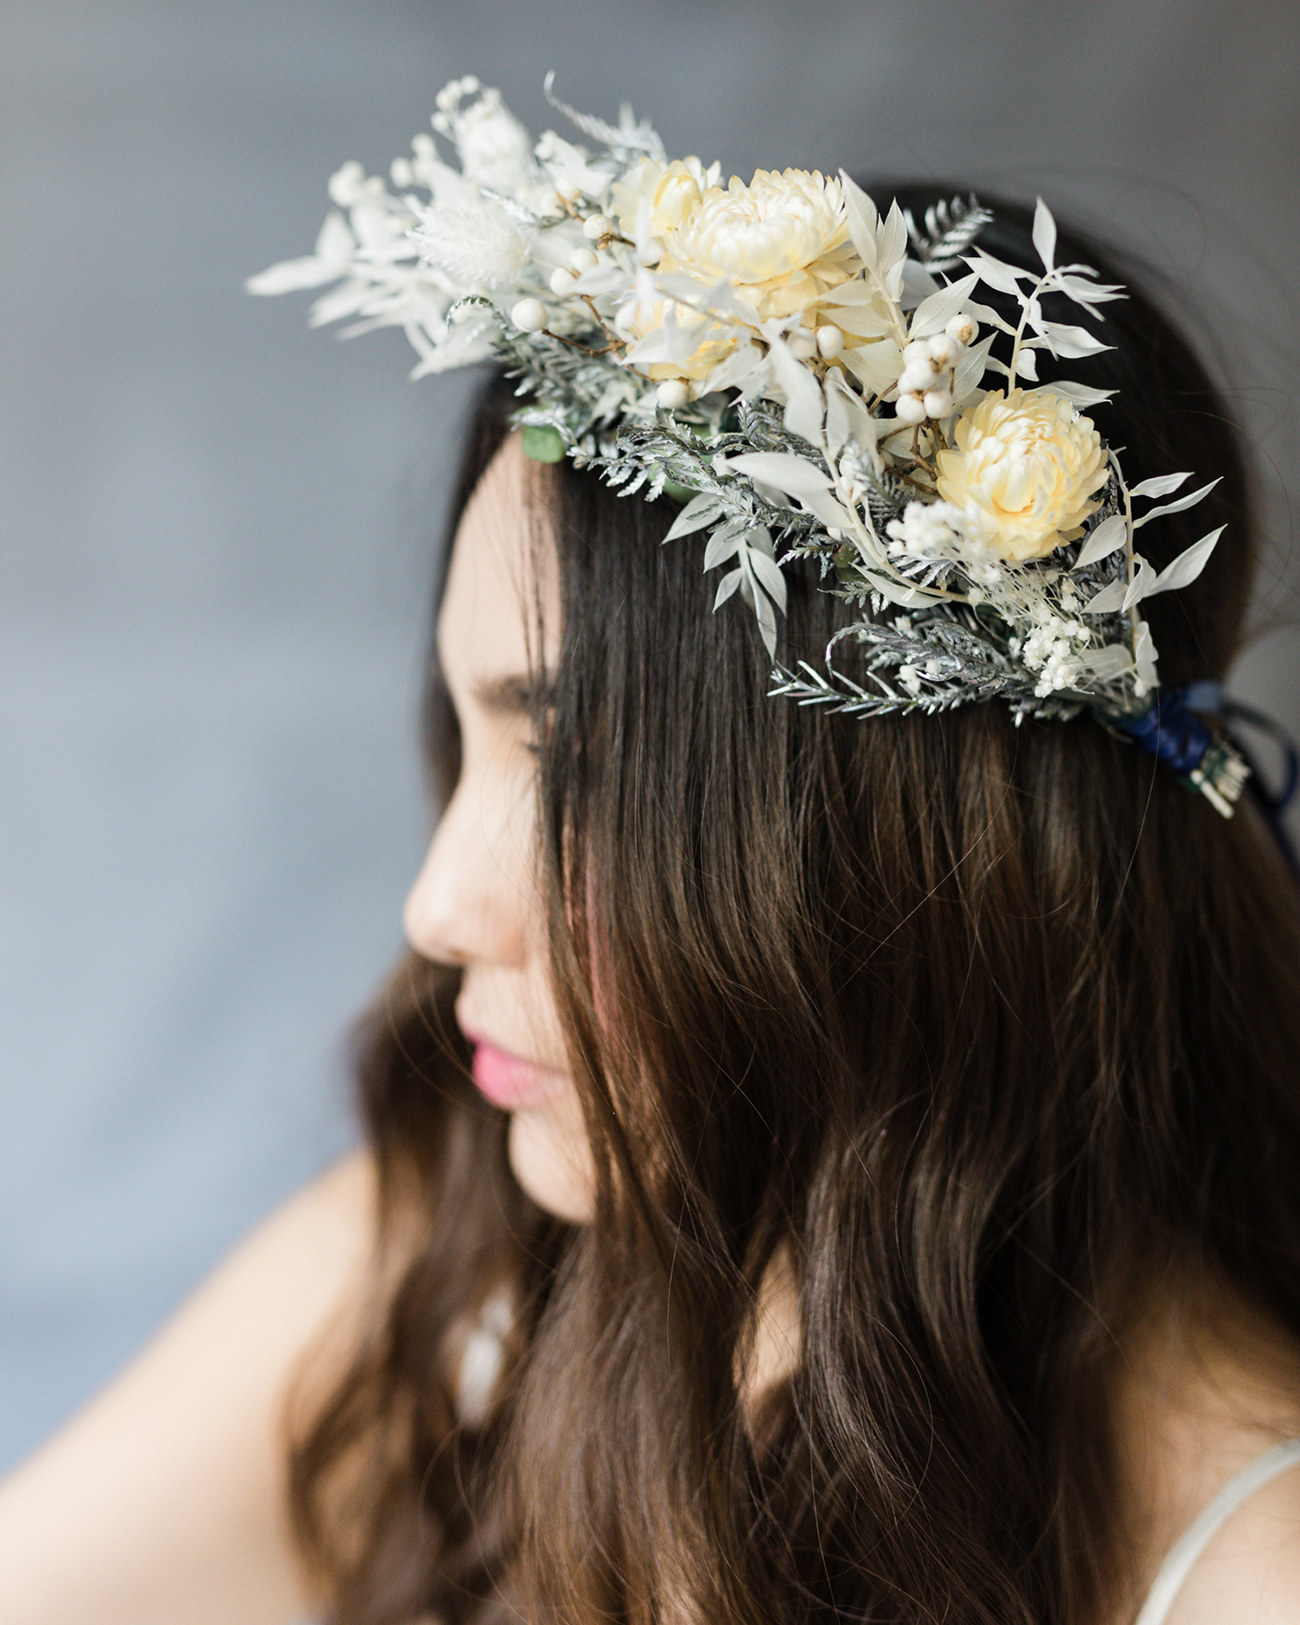 20 Wedding Hairstyles With Flowers: The Prettiest Wedding Hairstyles With Flowers